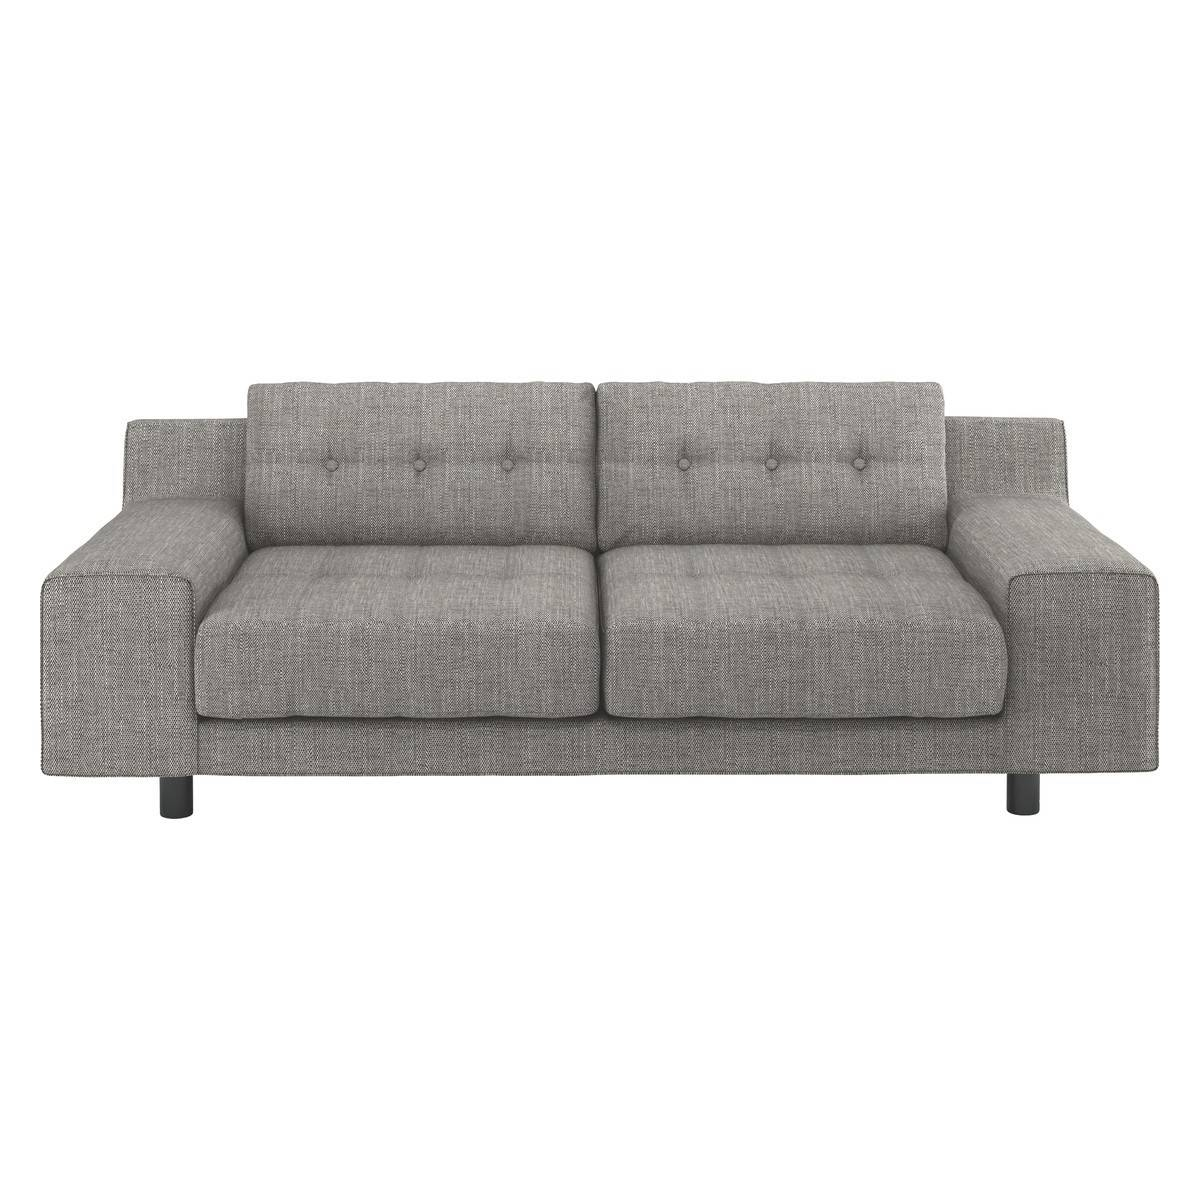 Sofas Center : Small Seater Sofas Heals Uk For Spacessmall Uksmall pertaining to Small 2 Seater Sofas (Image 26 of 30)